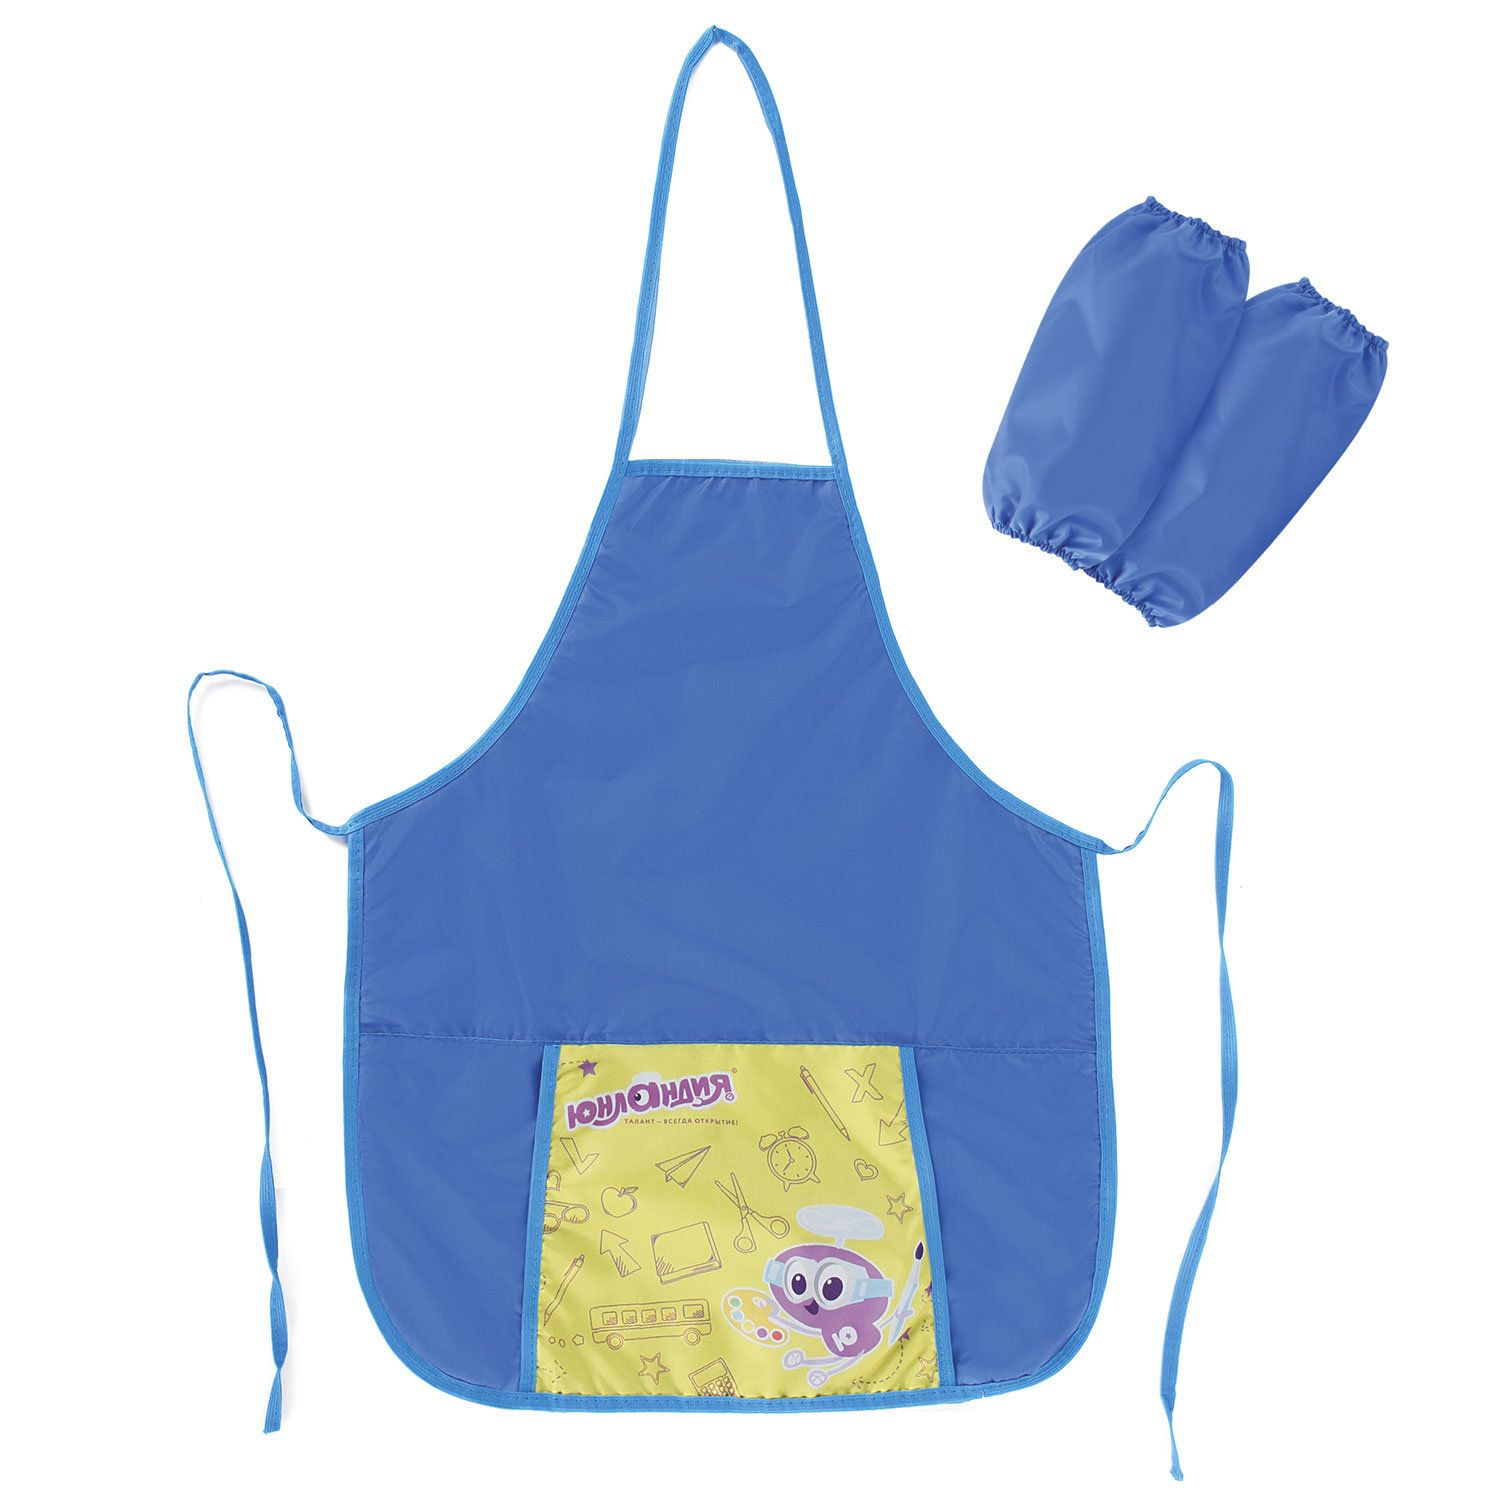 Apron for work and creative activities INLANDIA armbands, 44х55 cm, blue